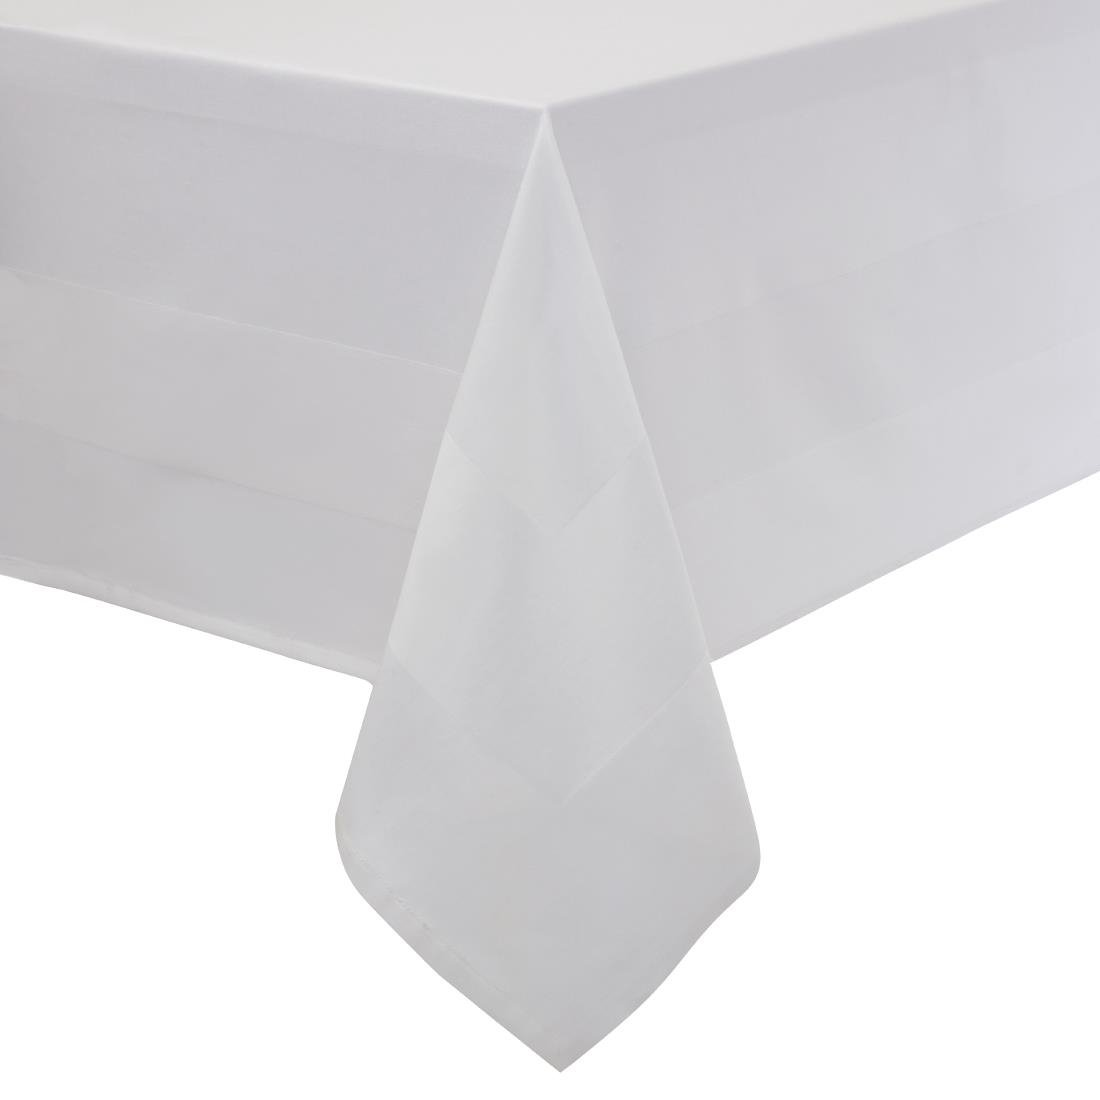 Image of Mitre Luxury Satin Band Tablecloth 1370 x 2280mm